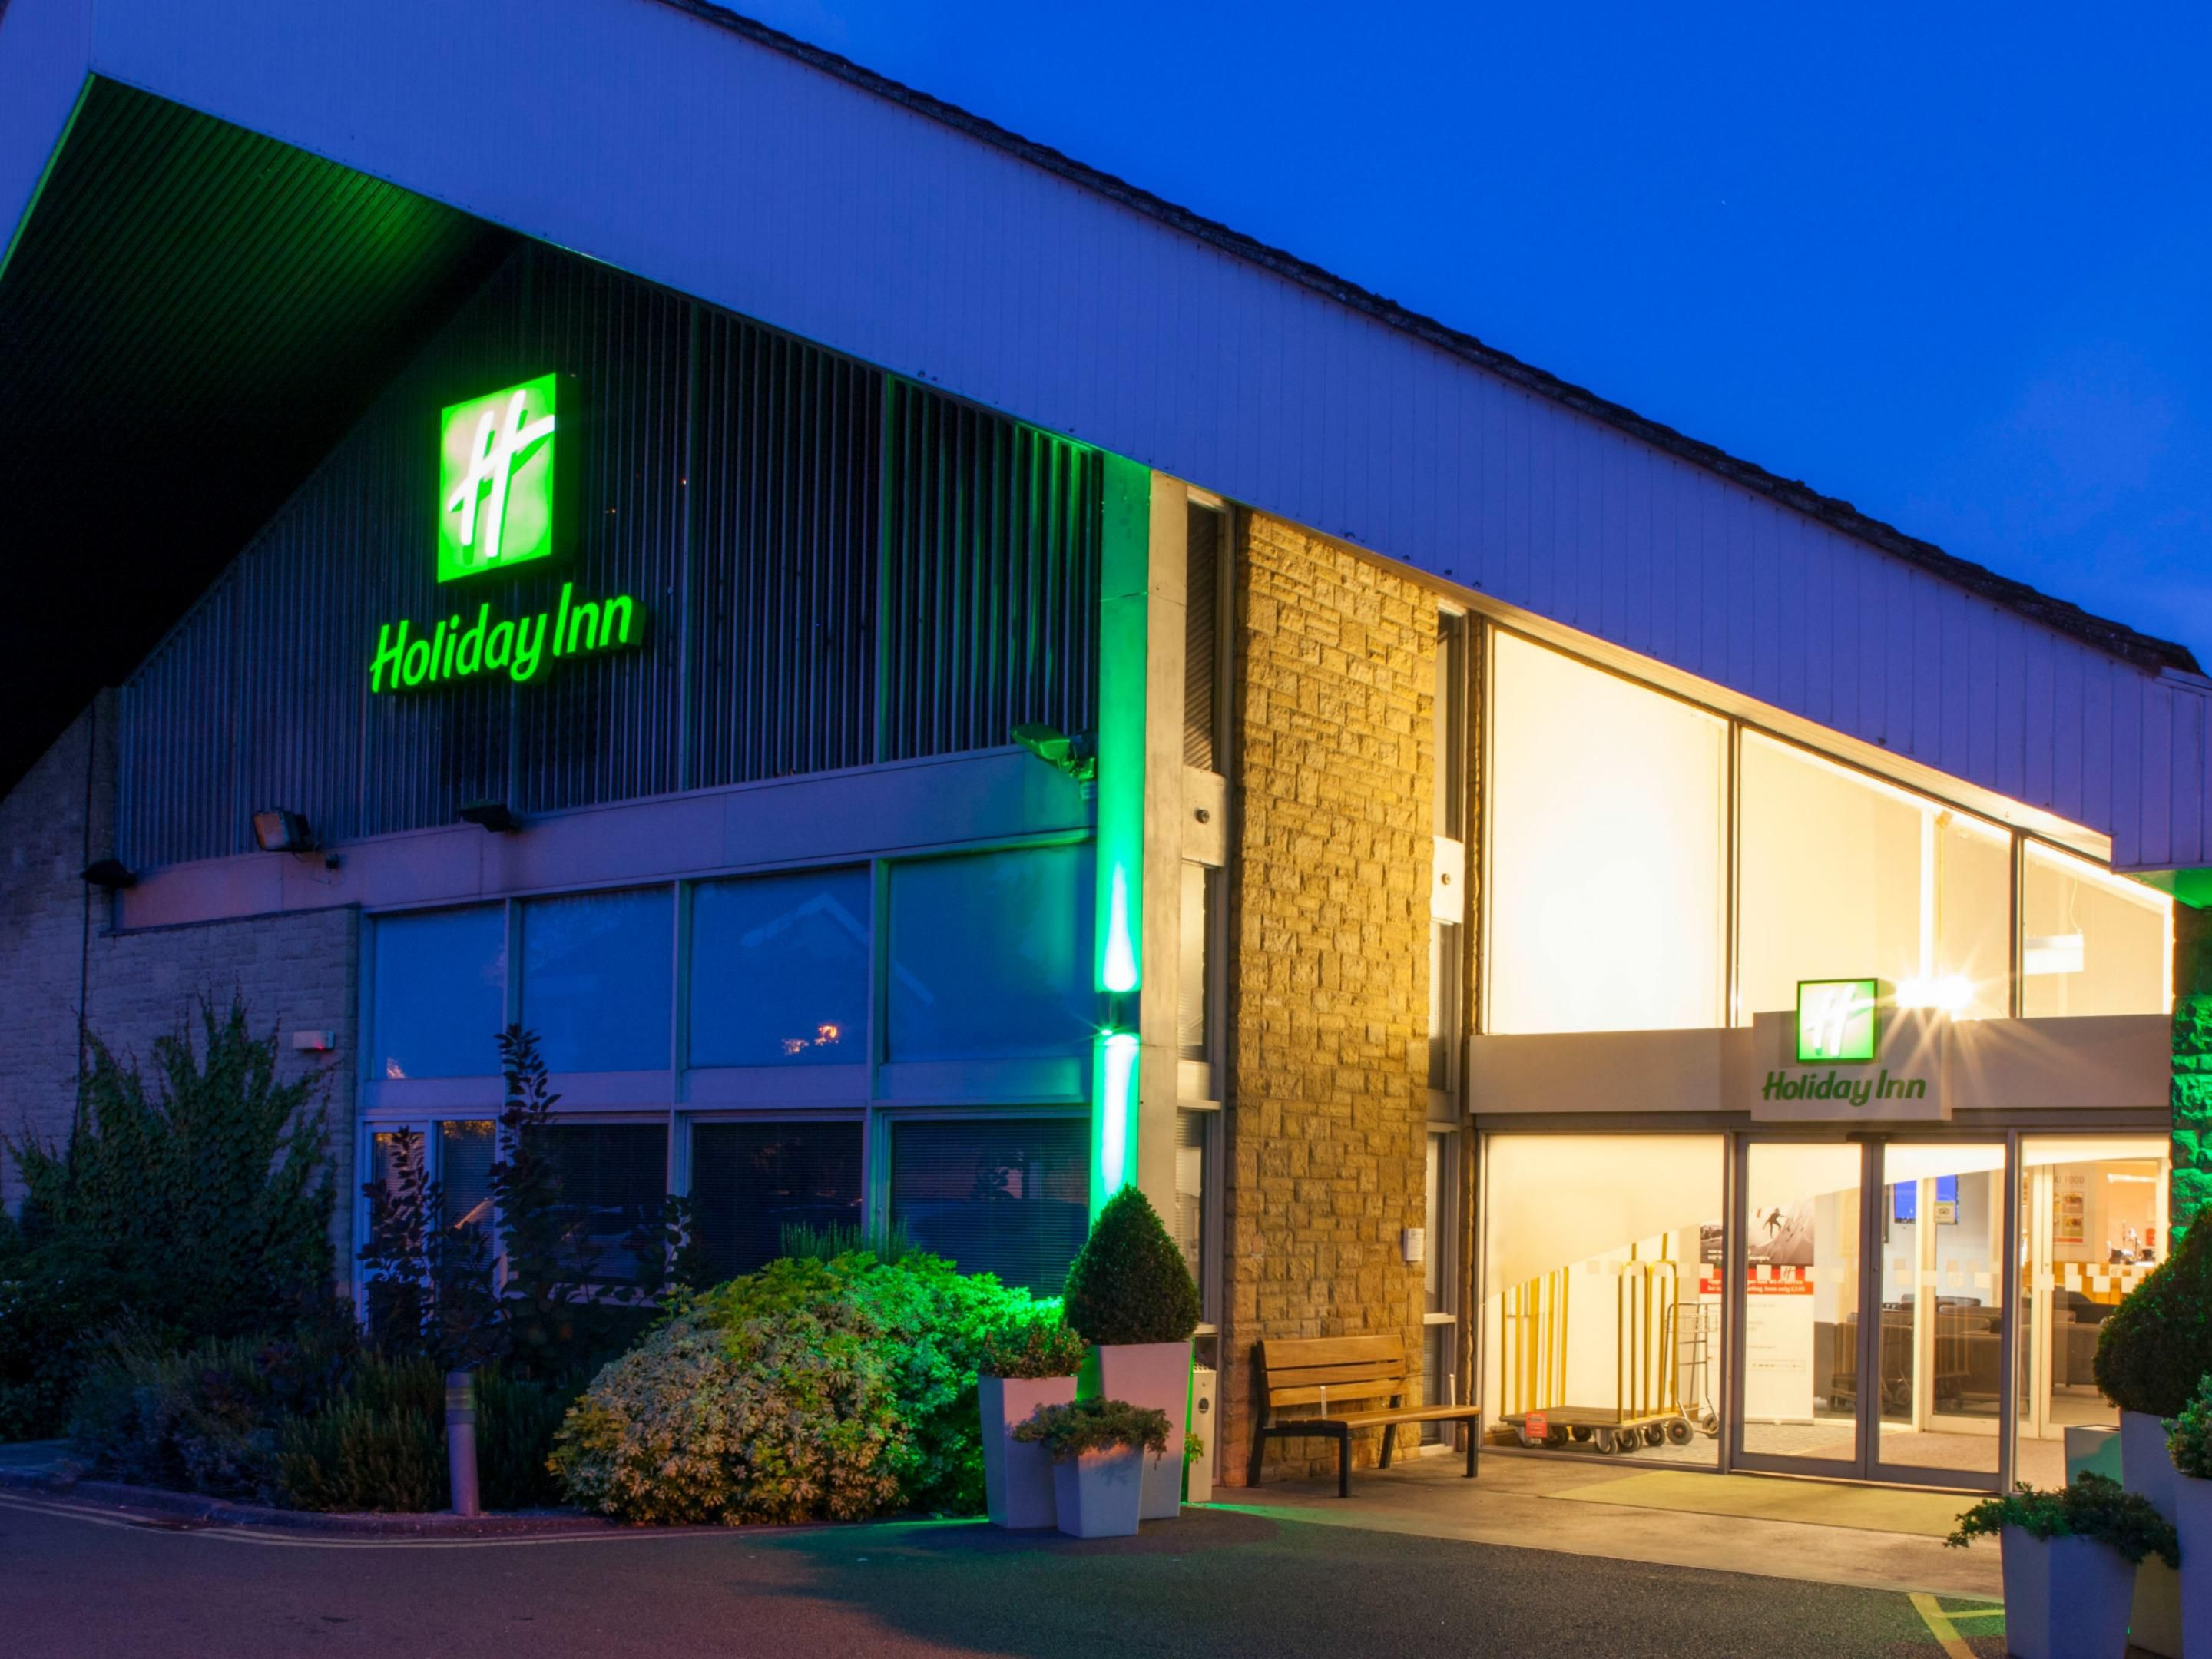 Sleep well at the Holiday Inn Swindon